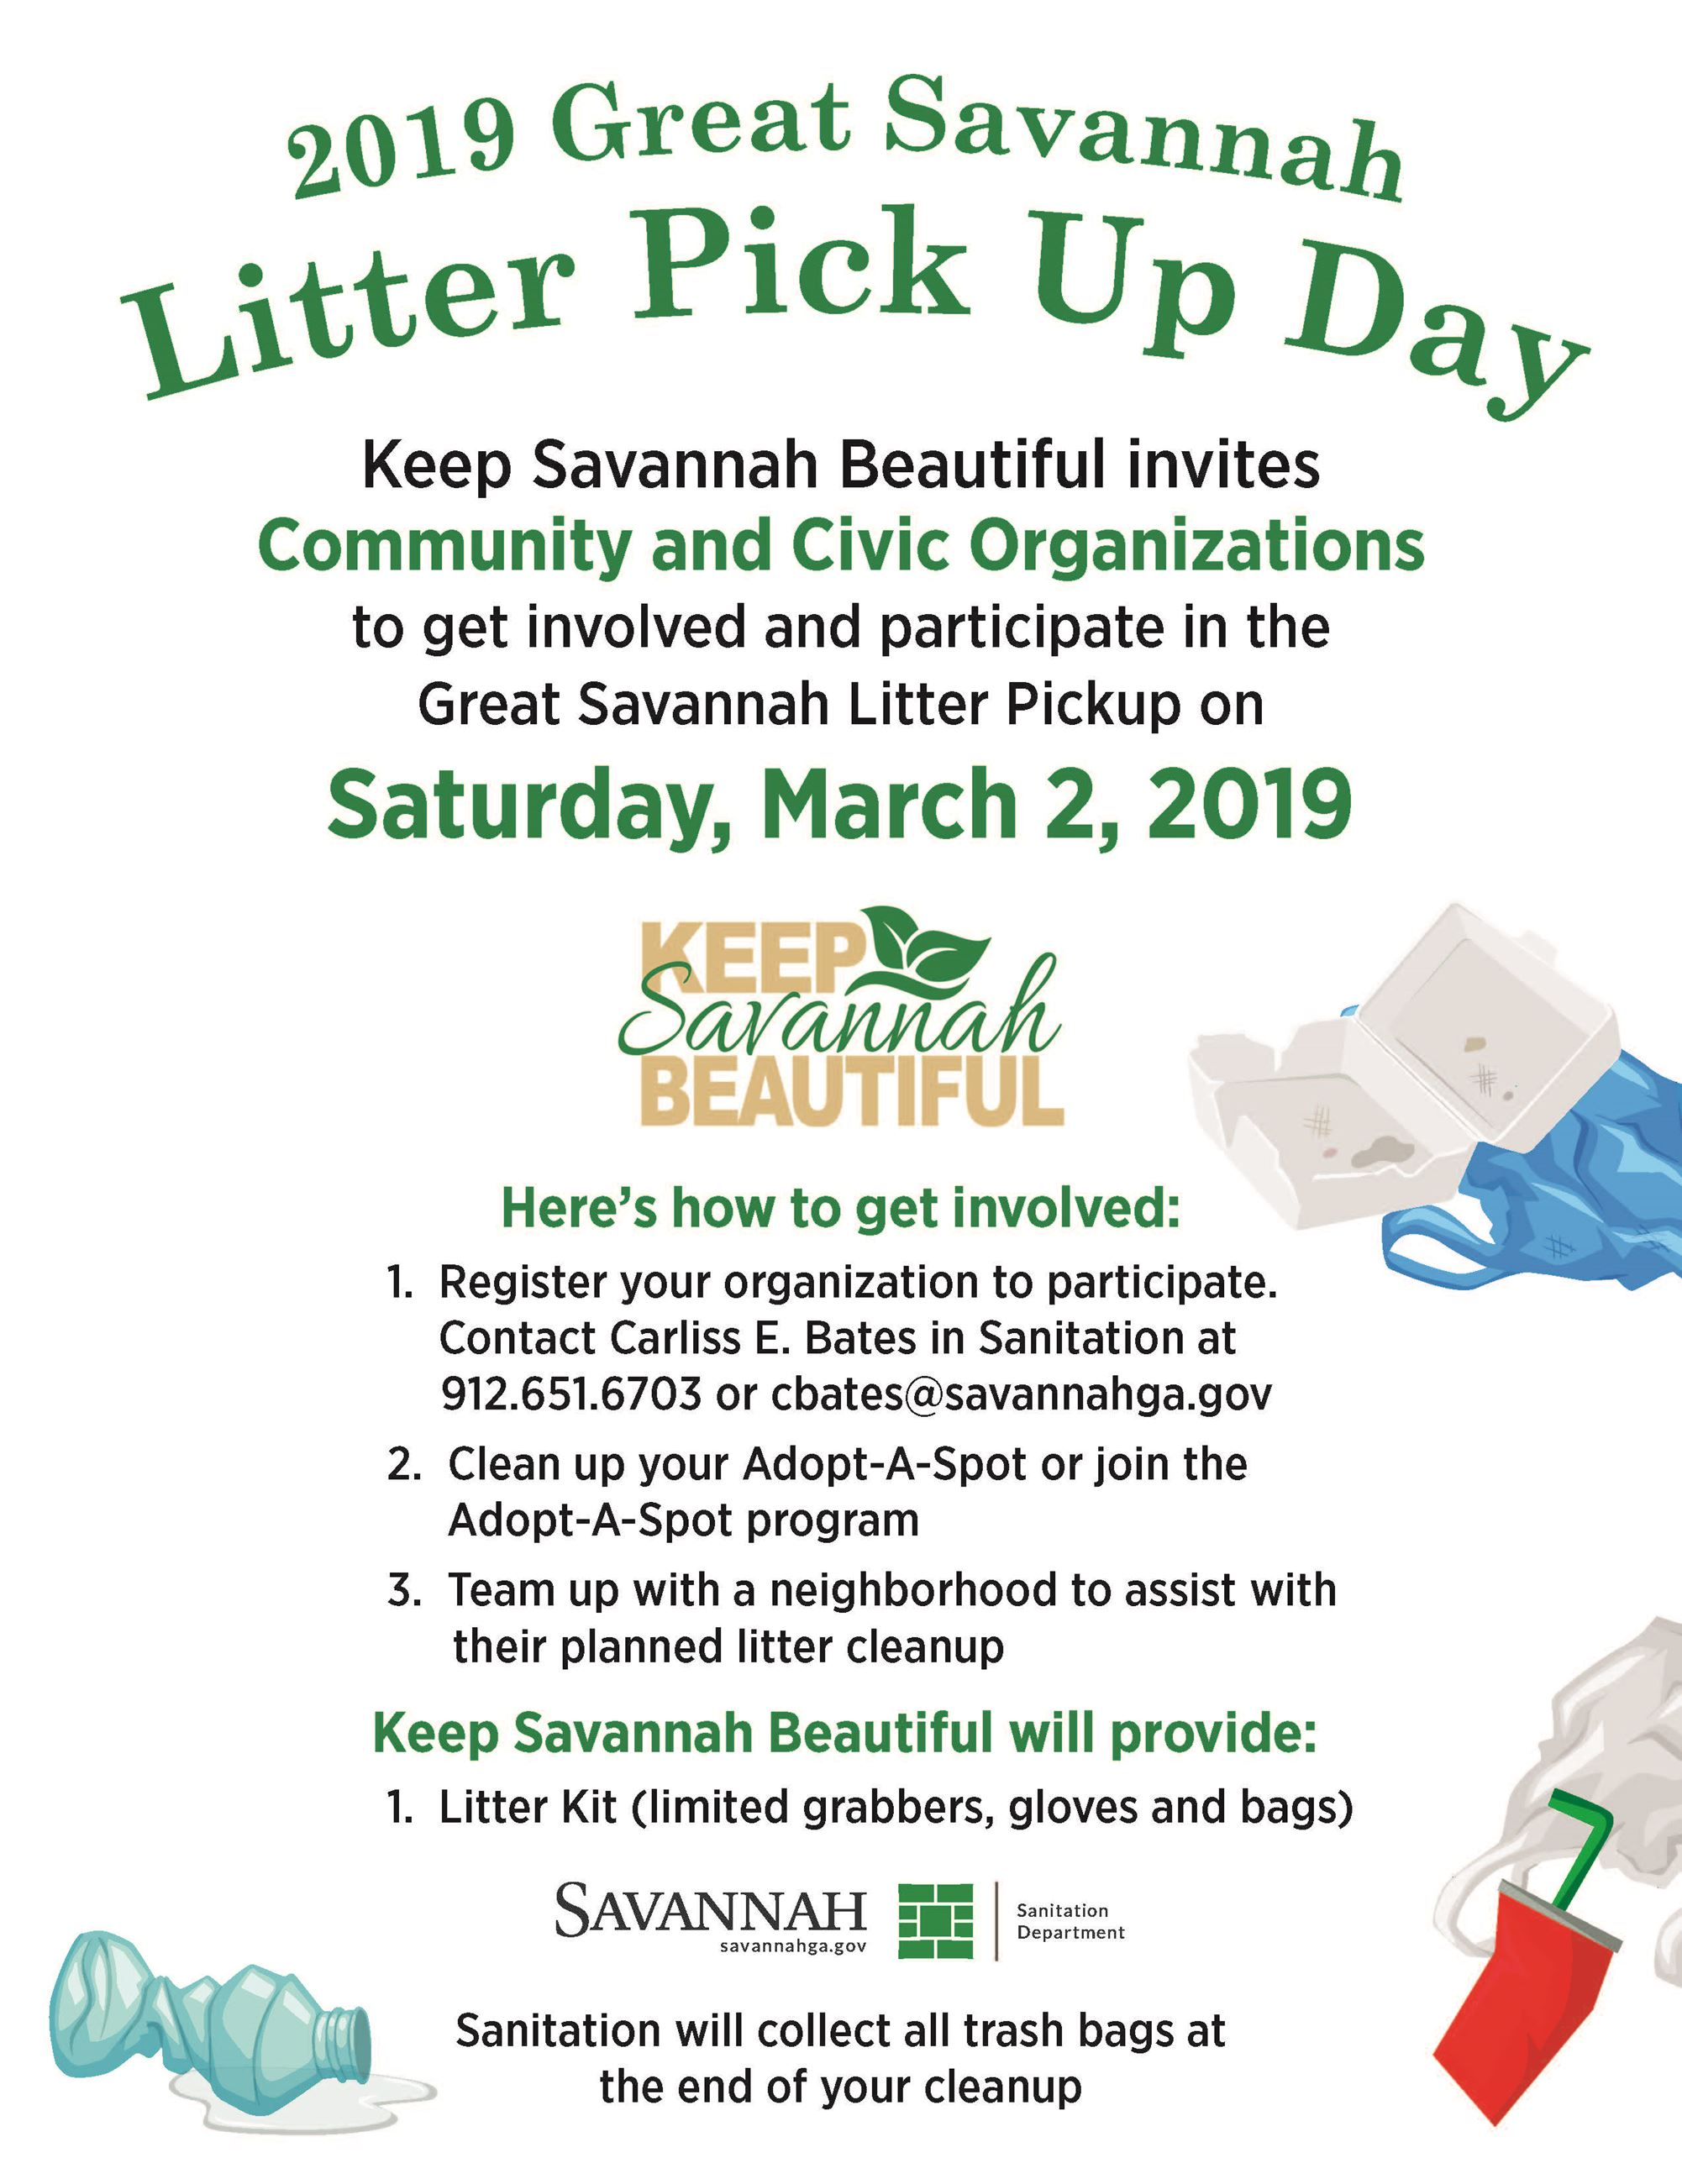 2019 Litter Pick Up